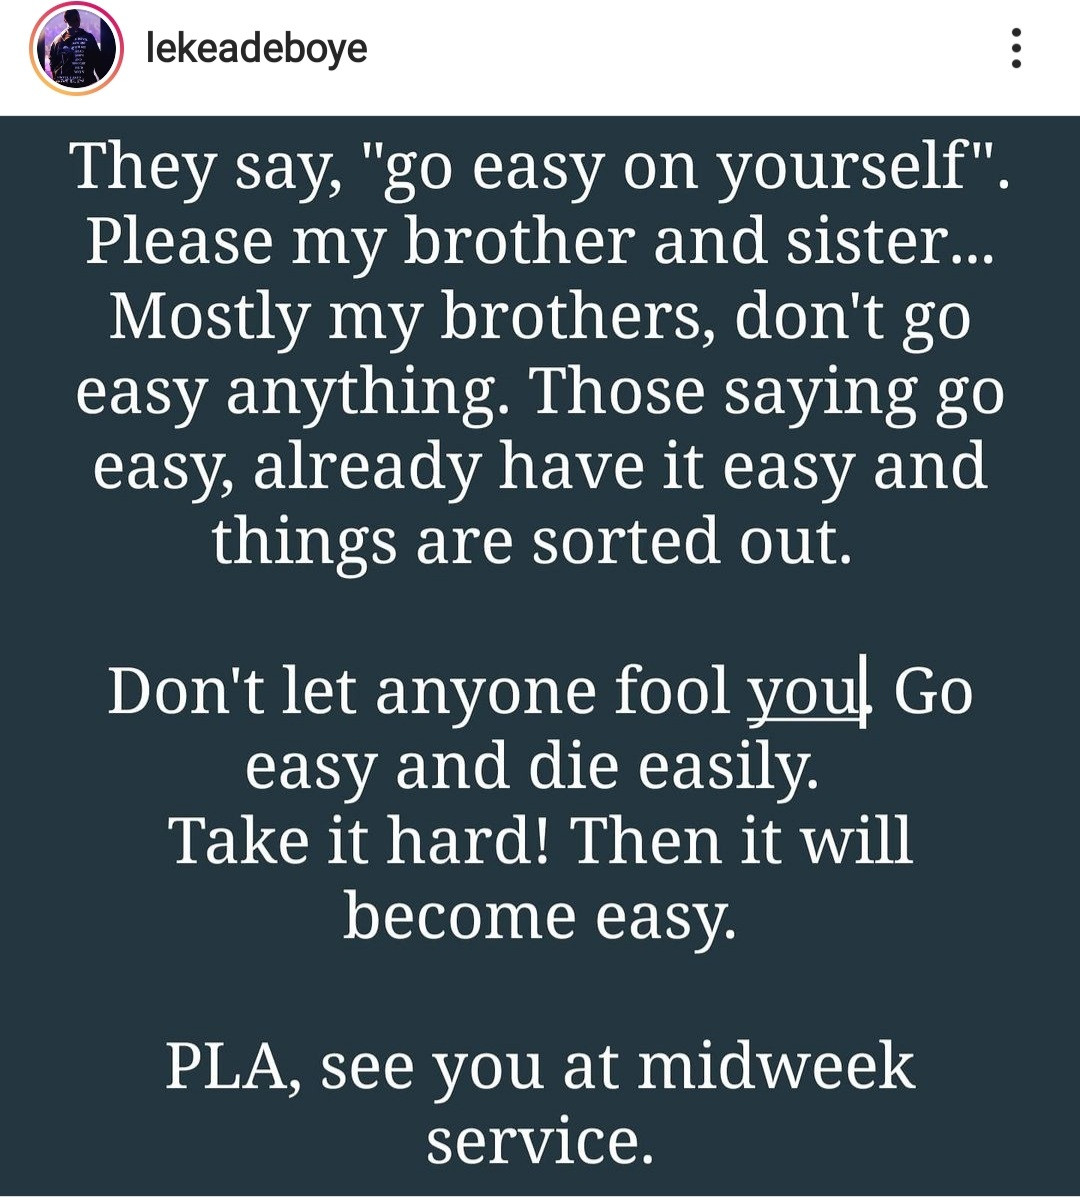 """""""Take it hard then it will become easy"""" Leke Adeboye warns his followers against going easy on themselves"""